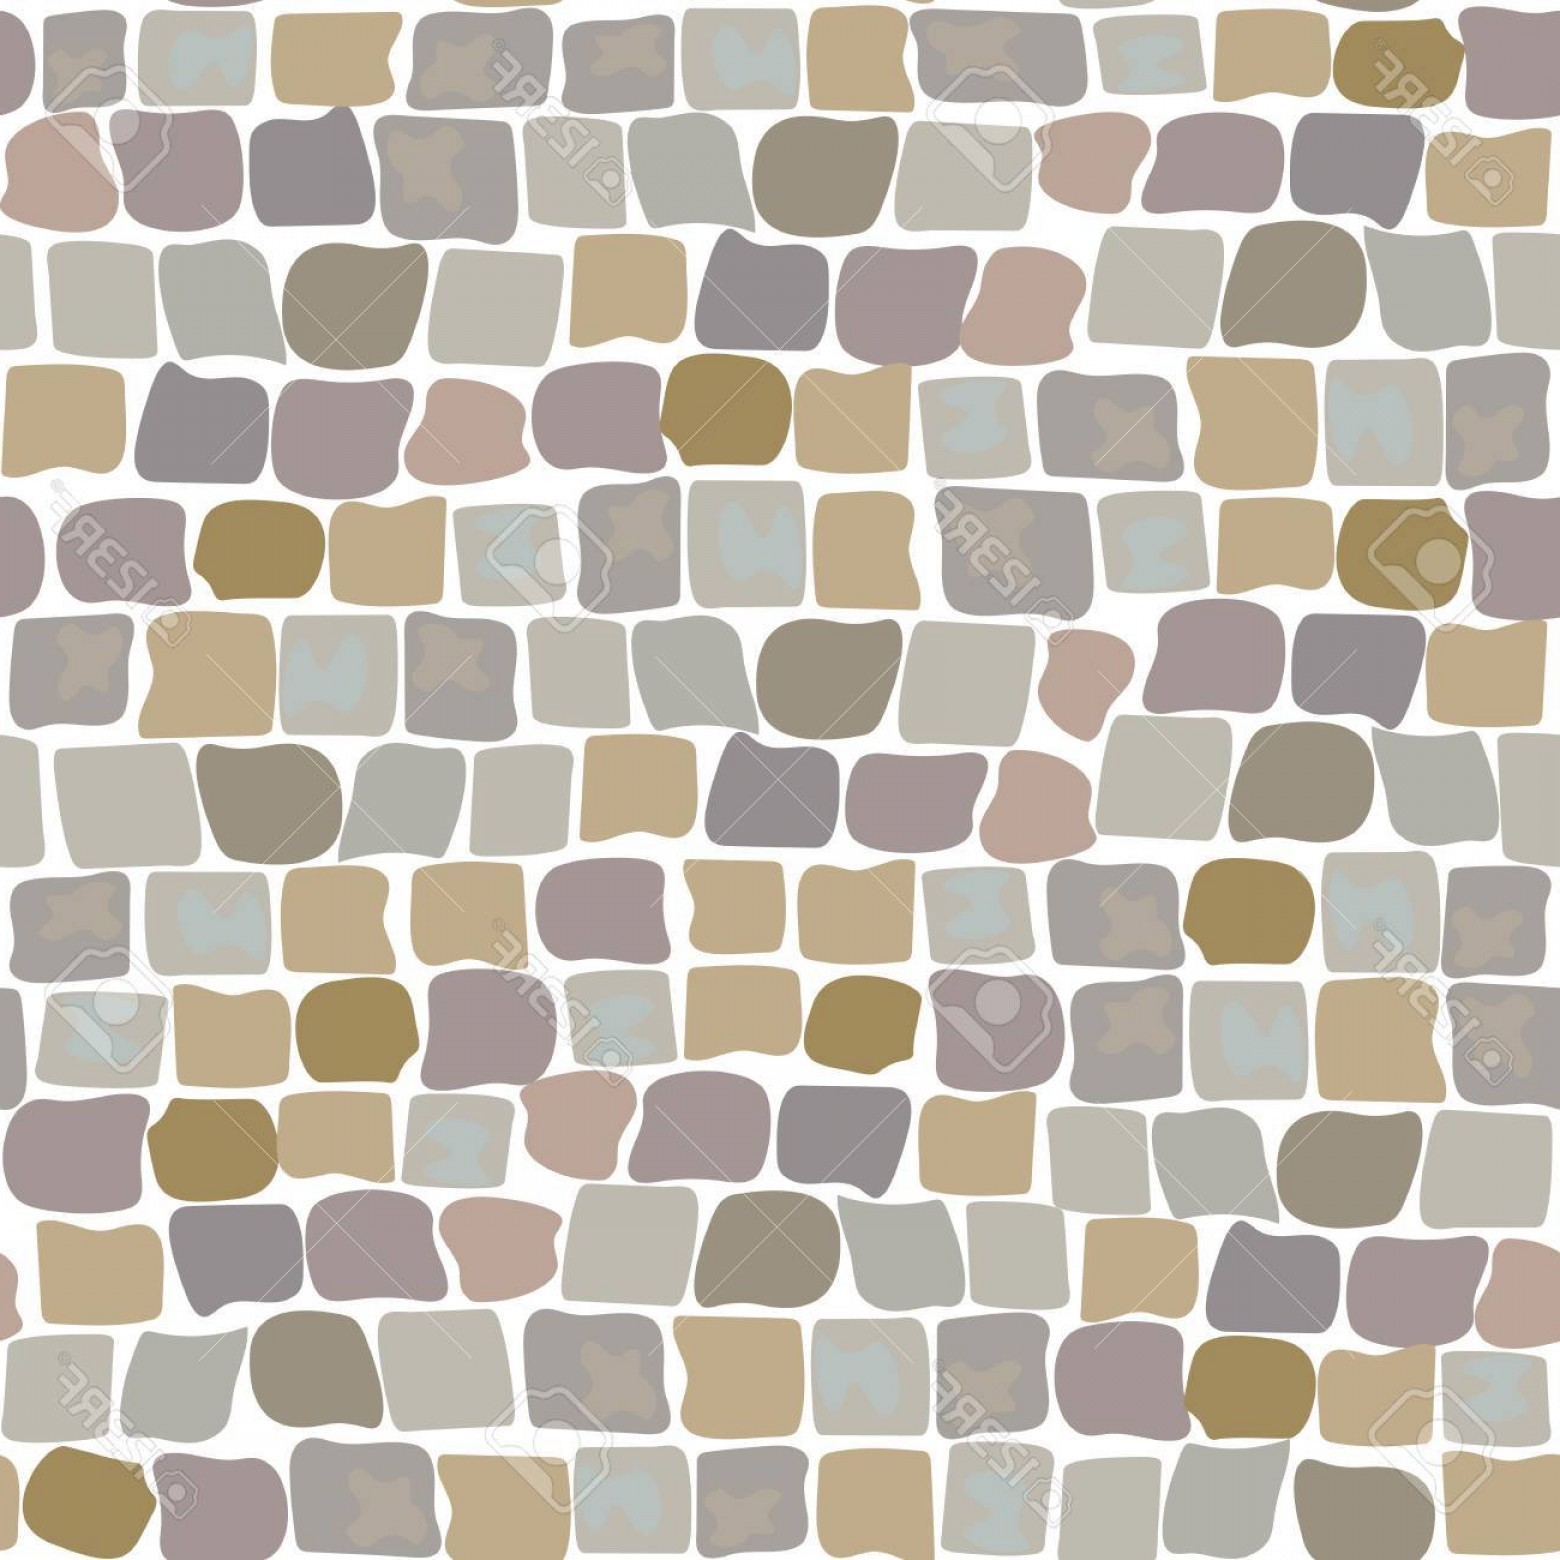 Vector Stone Landscaping: Photostock Vector Stone Vector Texture Cartoon Ground Seamless Pattern For Game Design Landscape Gardening Outdoor And